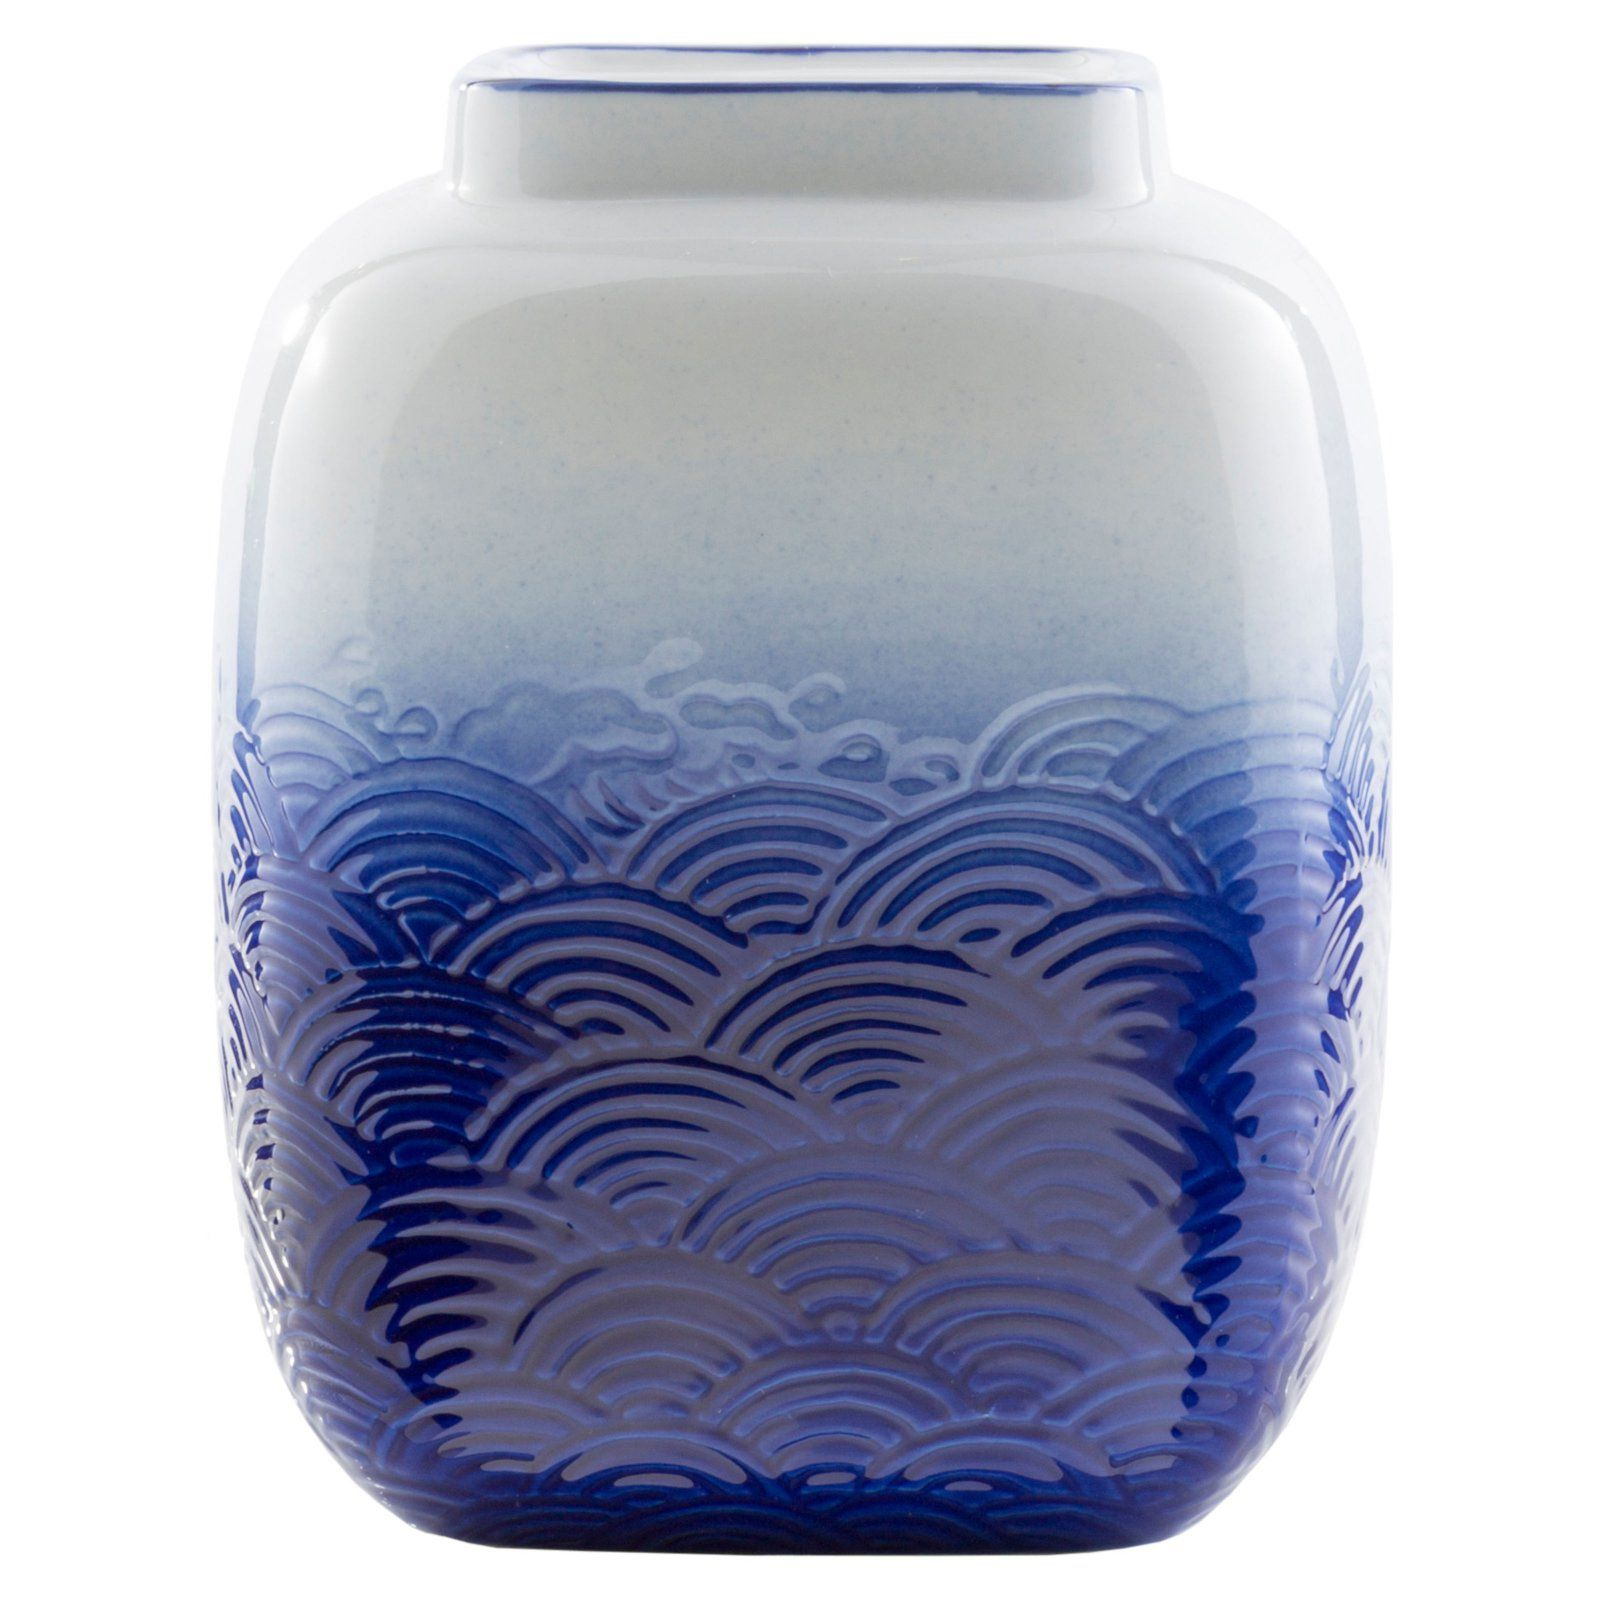 Surya Azul 7.48 in. Ceramic Table Vase in 2019 | Products ... on crystal napkin rings, painting napkin rings, table napkin rings, no sew napkin rings, art napkin rings, hat napkin rings, flower napkin rings, decoupage napkin rings, car napkin rings, umbrella napkin rings, white napkin rings, hand painted napkin rings, light napkin rings, watering can napkin rings, wine napkin rings, greenery napkin rings, book napkin rings, tea napkin rings, antique napkin rings, glass napkin rings,